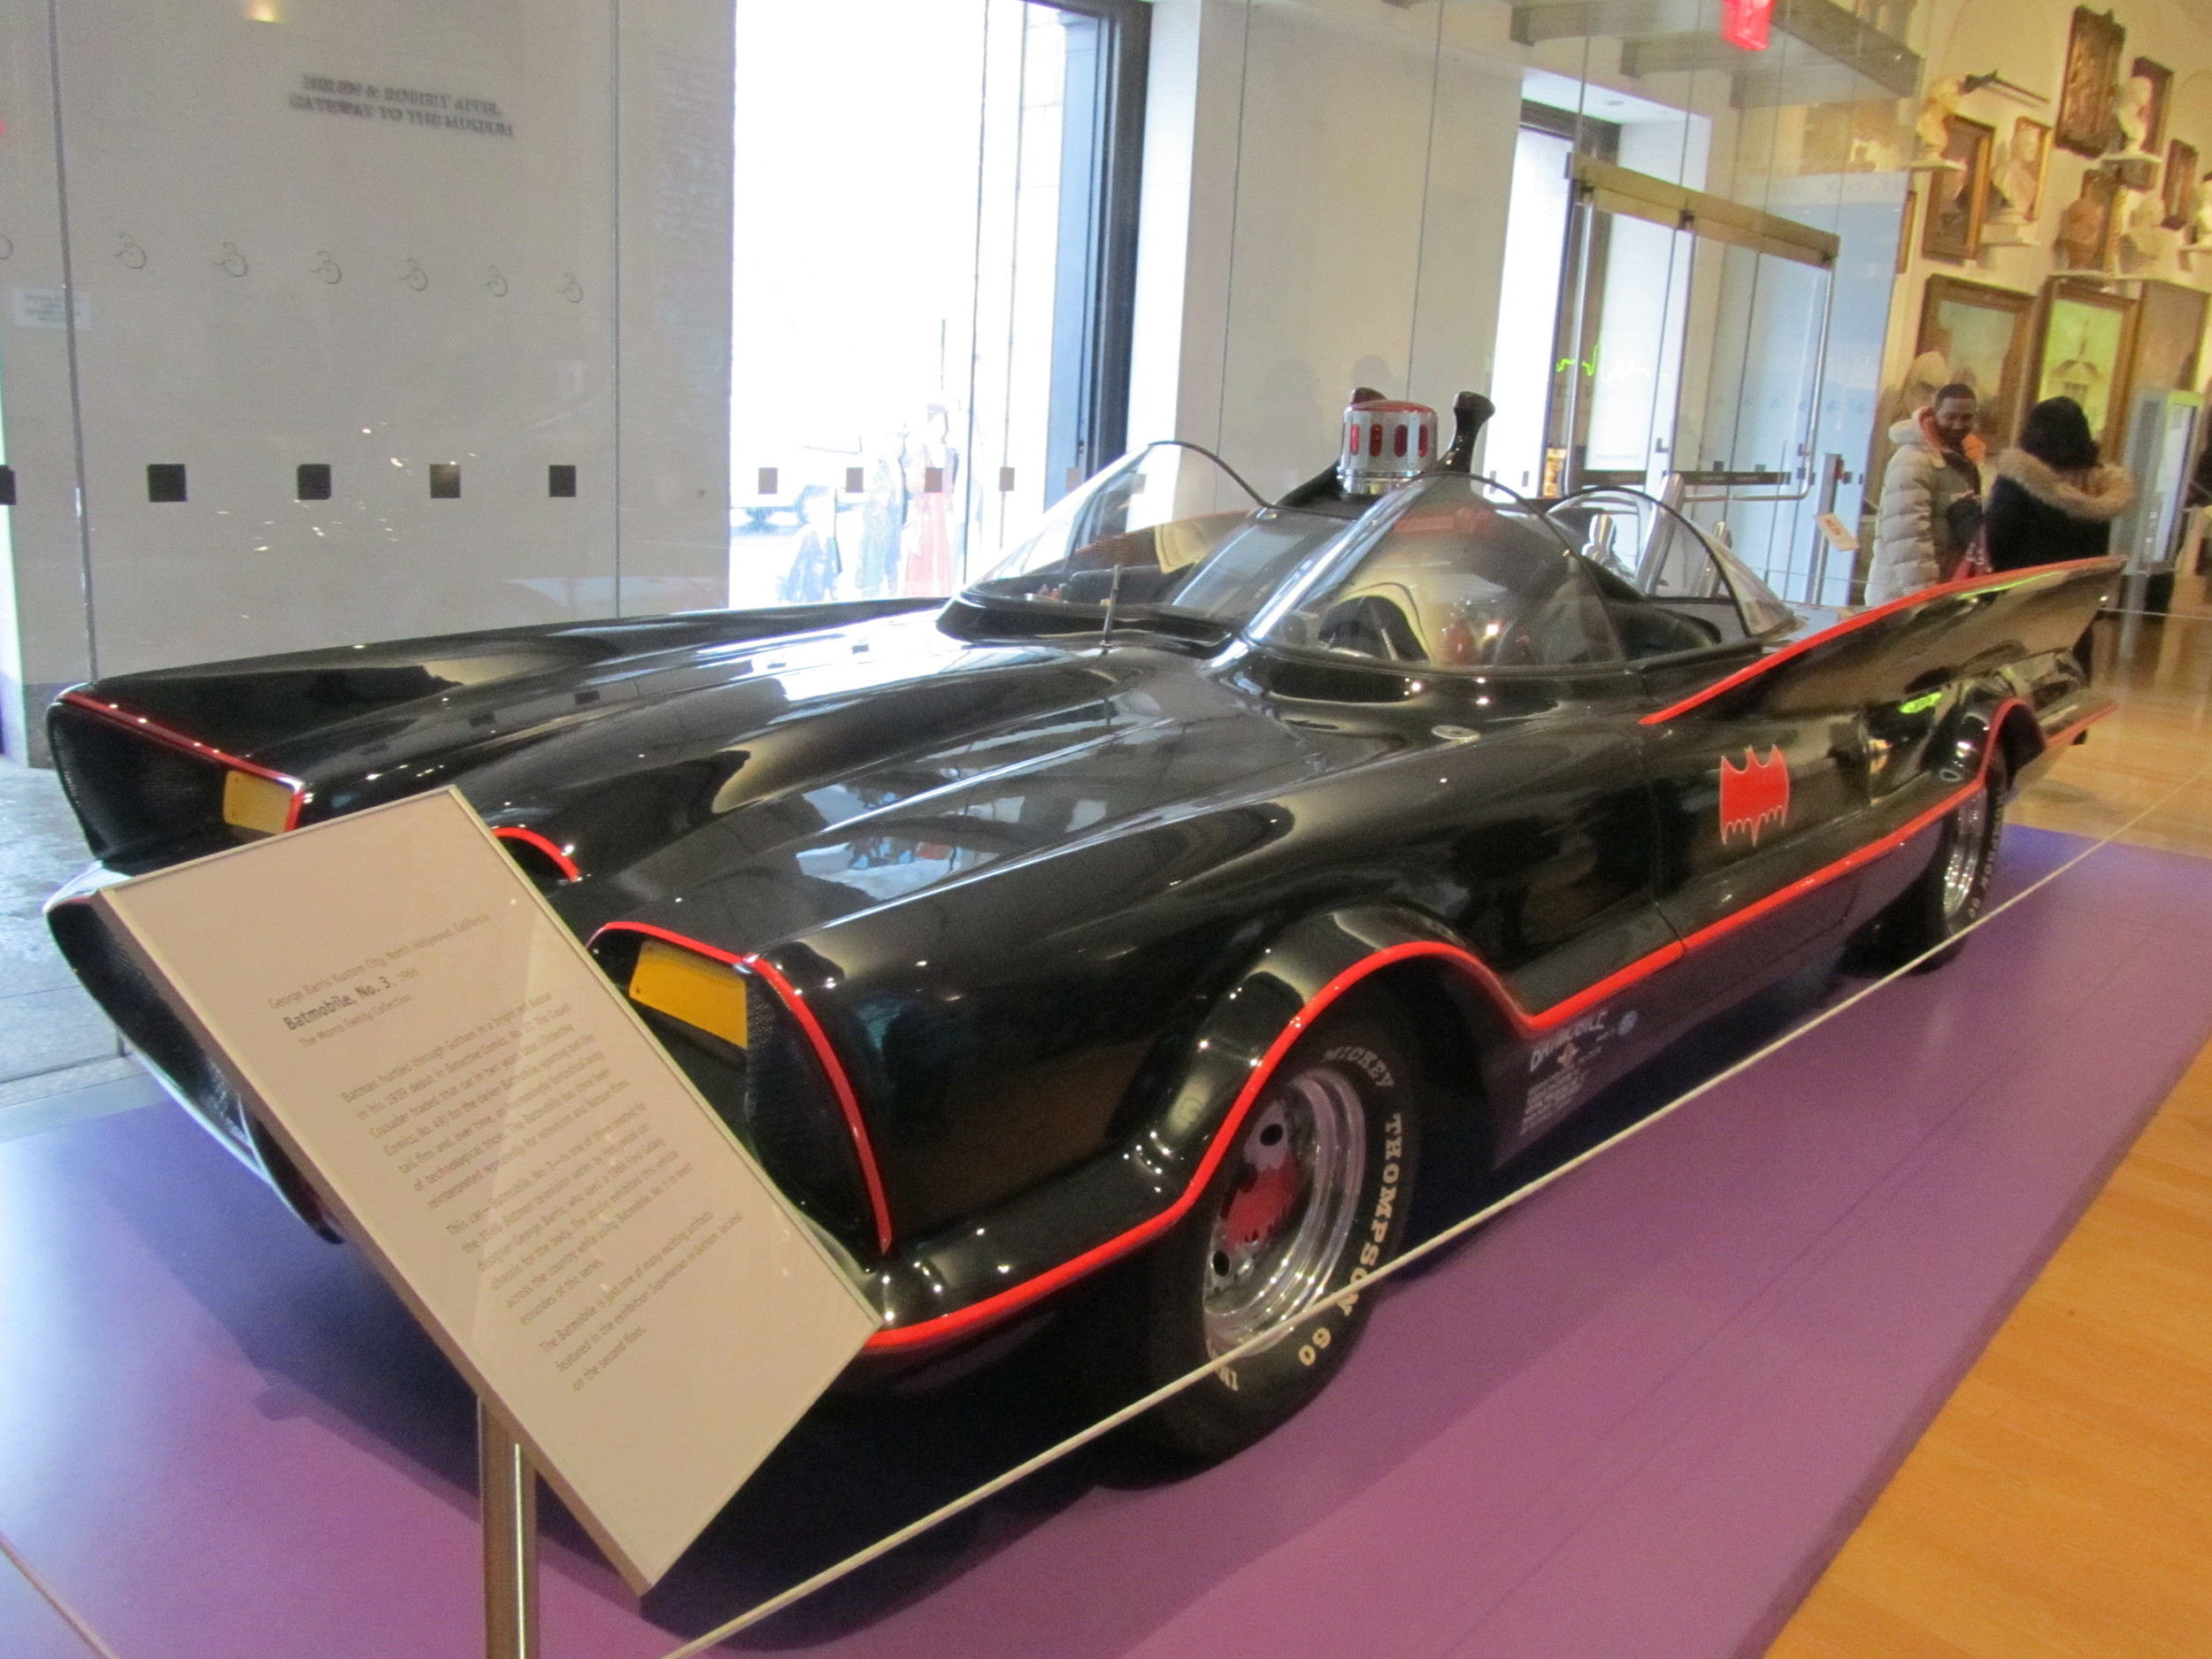 We got to see the original Batmobile and some of the props, costumes, and drawings from the beginning of the Comic (Illustrated Novel) Days at the New-York Historical Society.